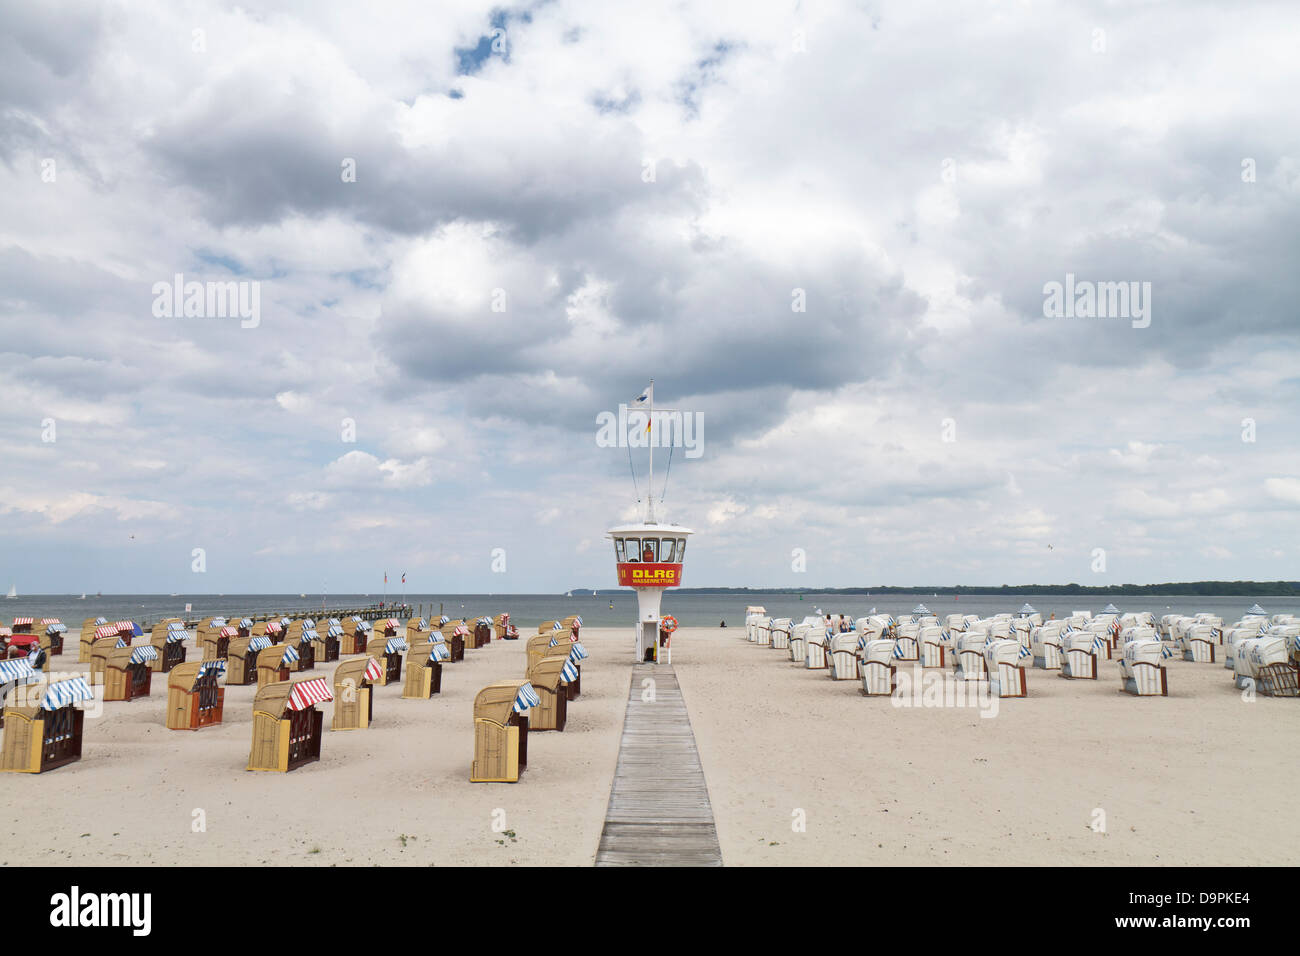 DLRG (Deutsche Lebens-Rettungs-Gesellschaft e.V.) post in Travemünde on the Baltic Sea. - Stock Image